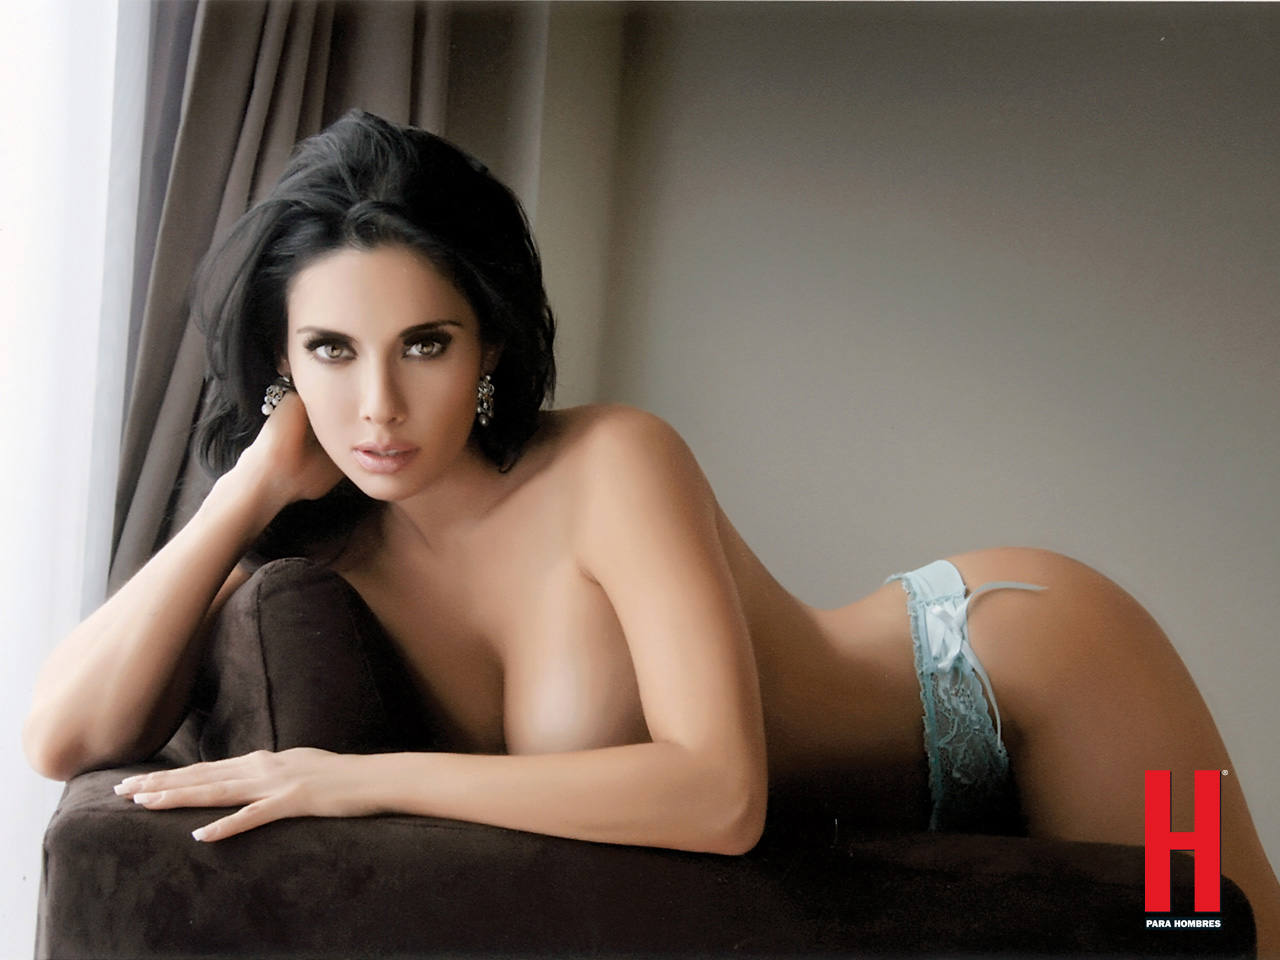 Amanda Rosa Revista H Extremo | Search Results | Calendar 2015